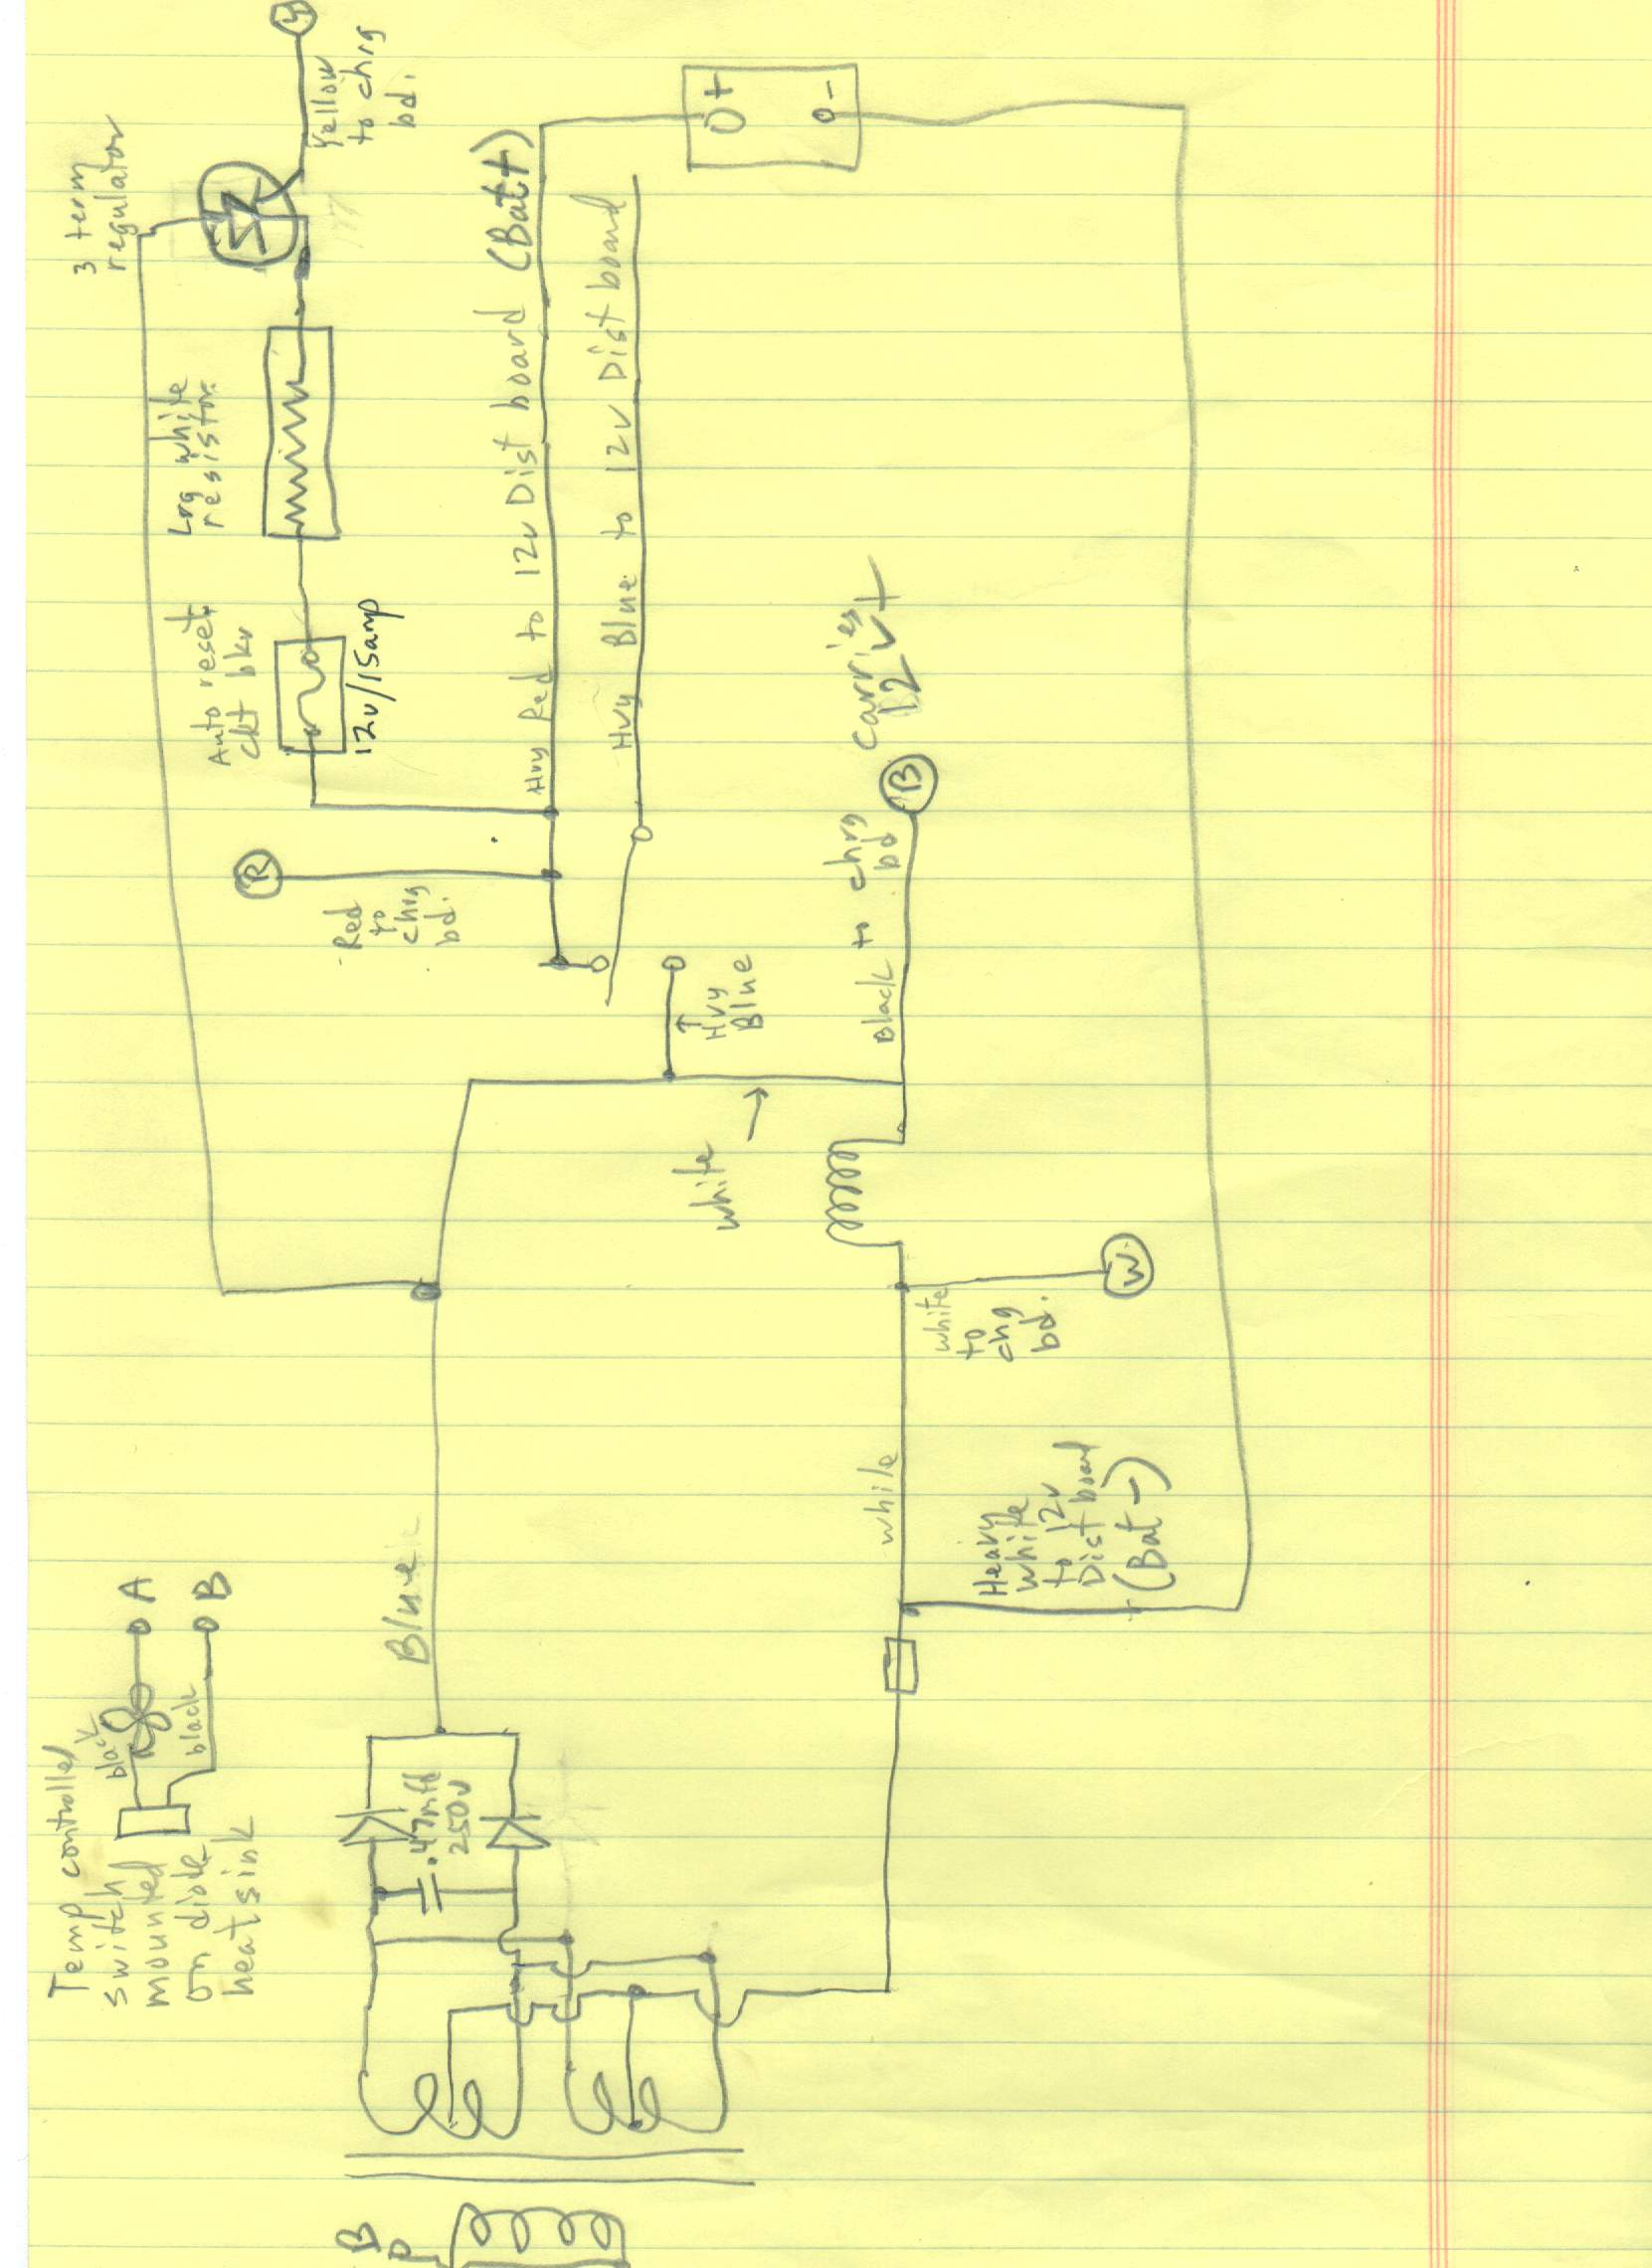 Magnetek Power Converter 3200 Wiring Diagram Trusted Diagrams 6332 Auto Electrical Hvac Fan Motor